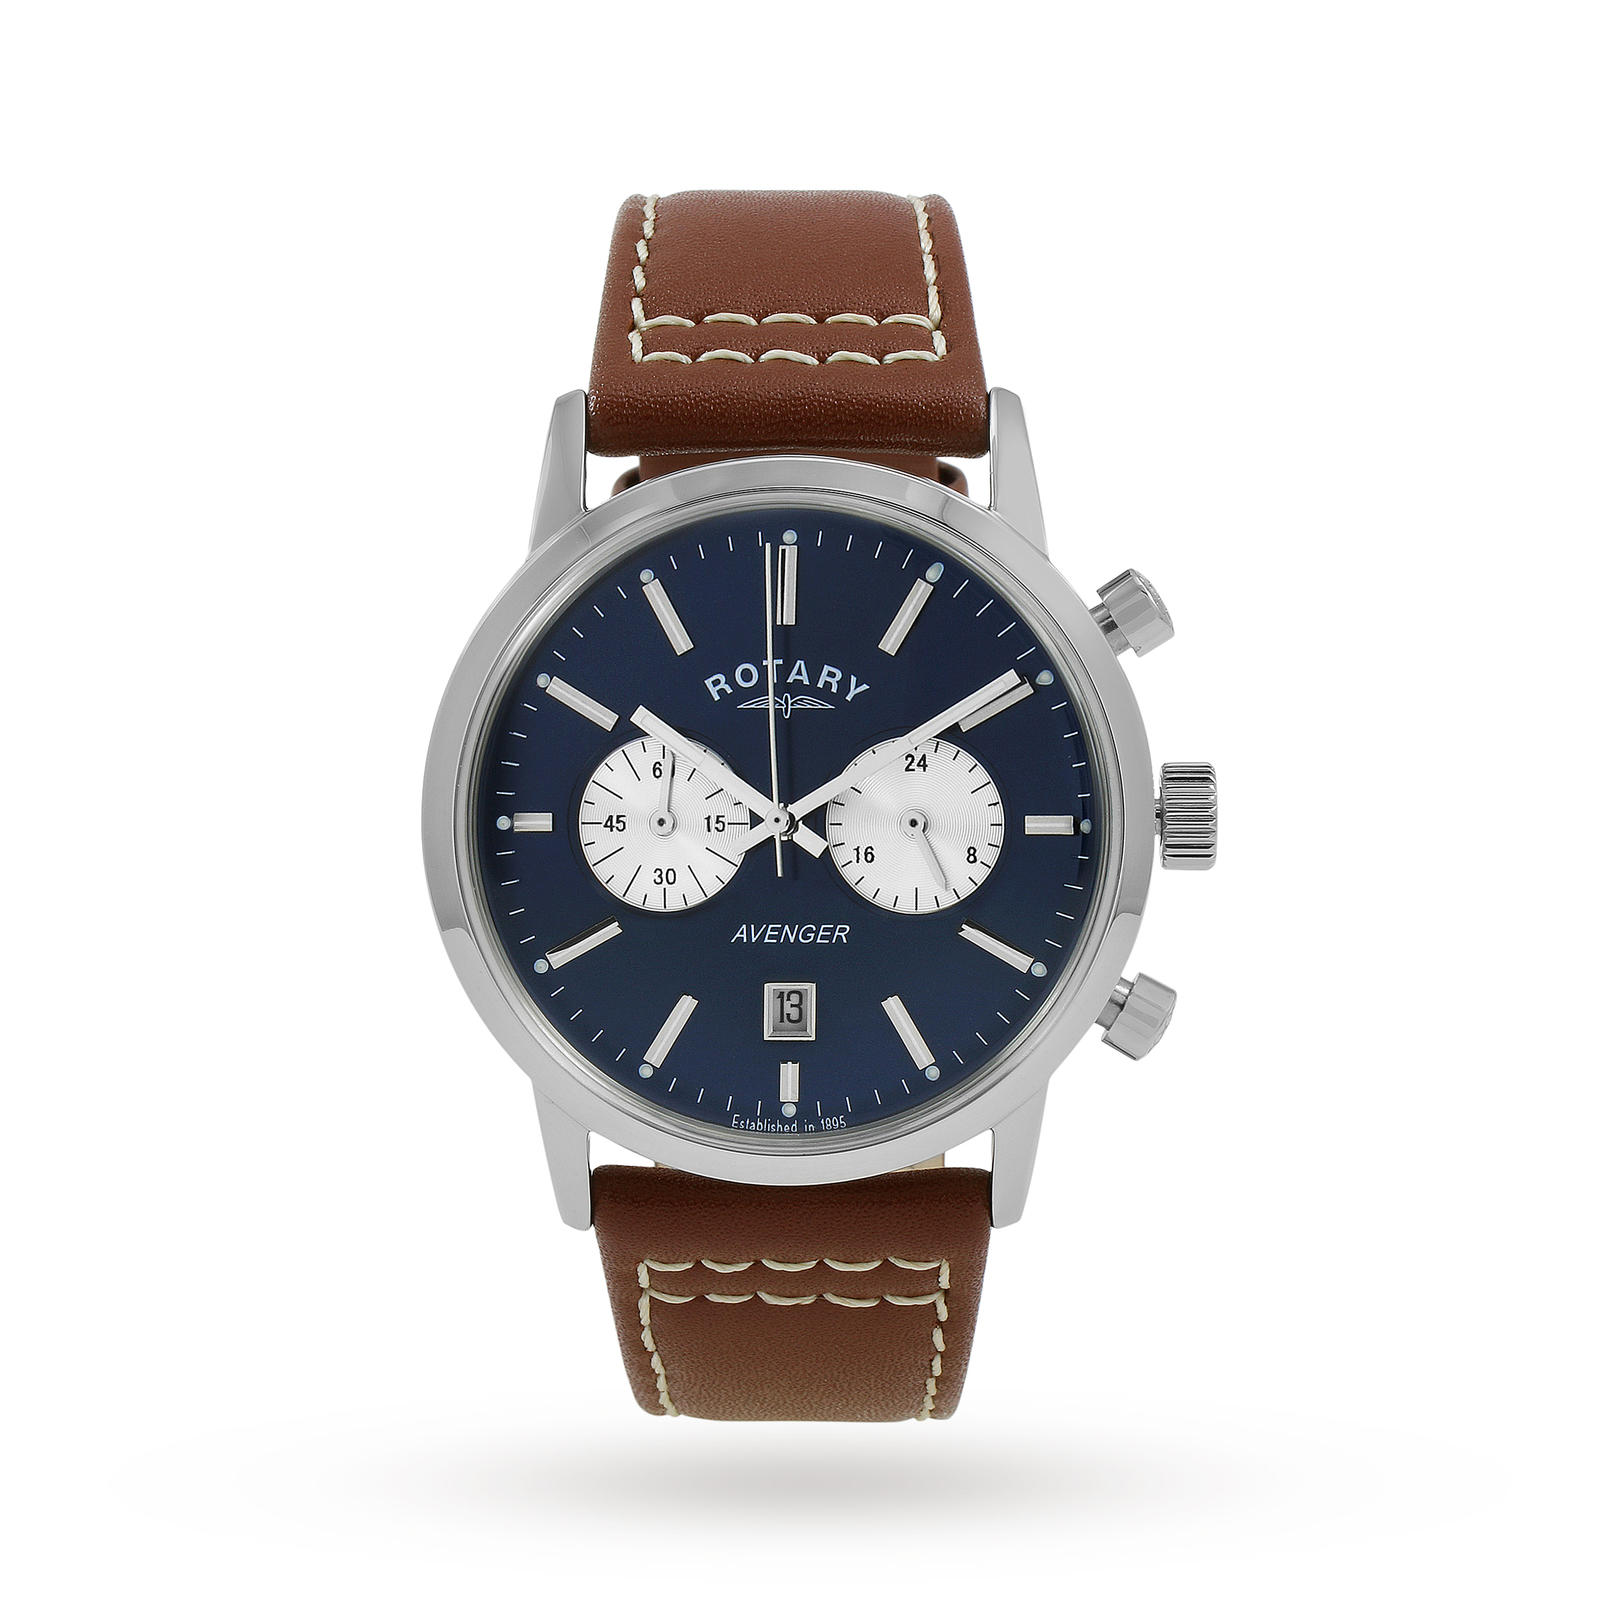 Rotary Avenger Chronograph Watch